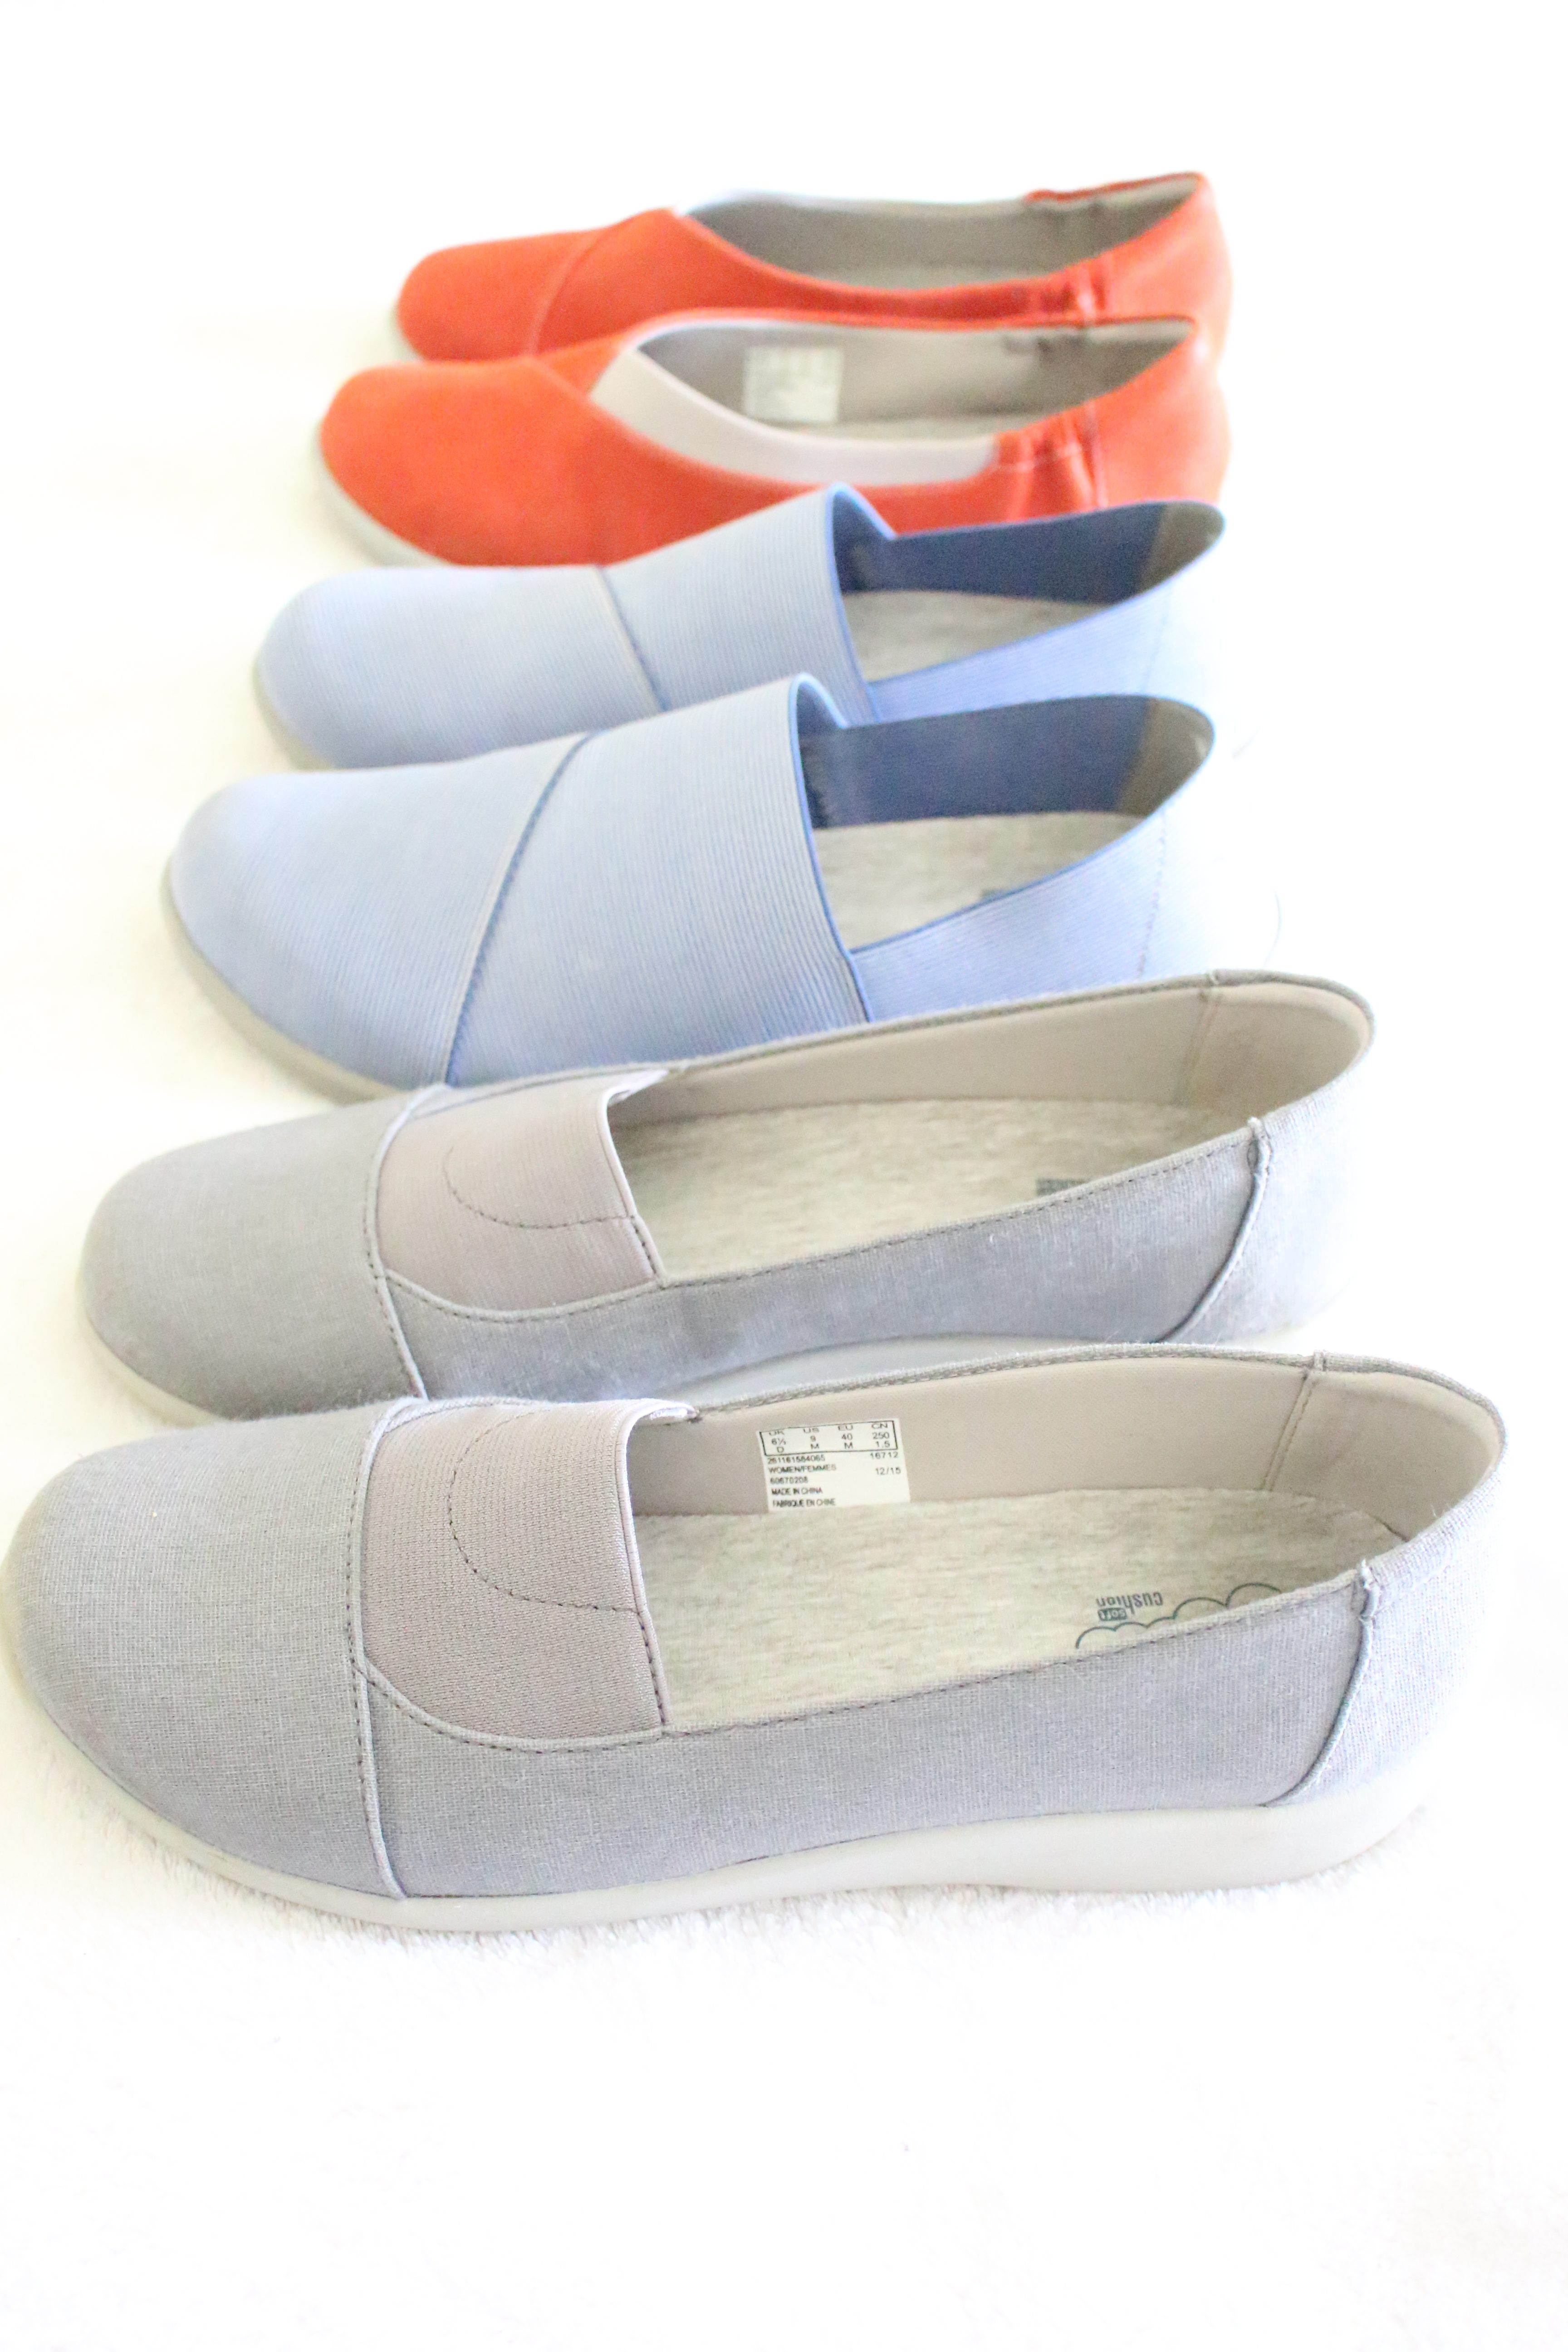 Clarks Cloudsteppers are comfy and versatile shoes by www.mylifefromhome.com